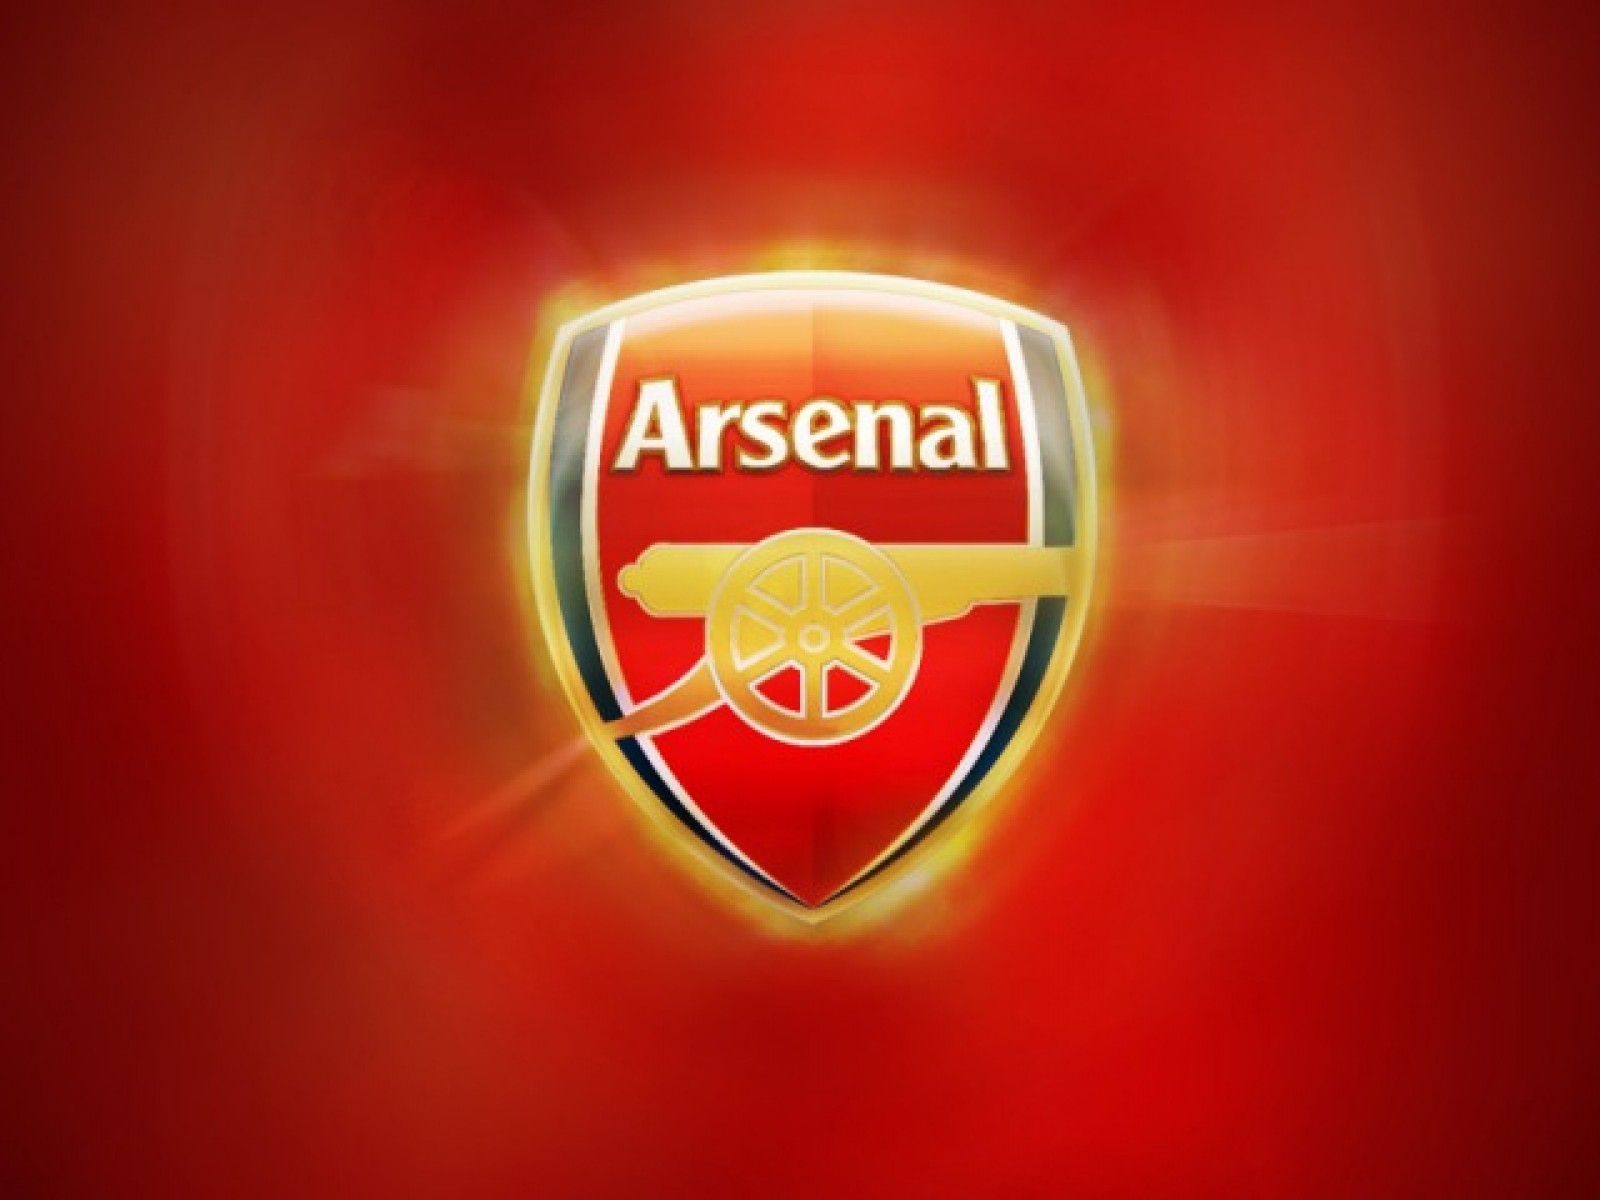 news and entertainment arsenal logo jan 01 2013 100331